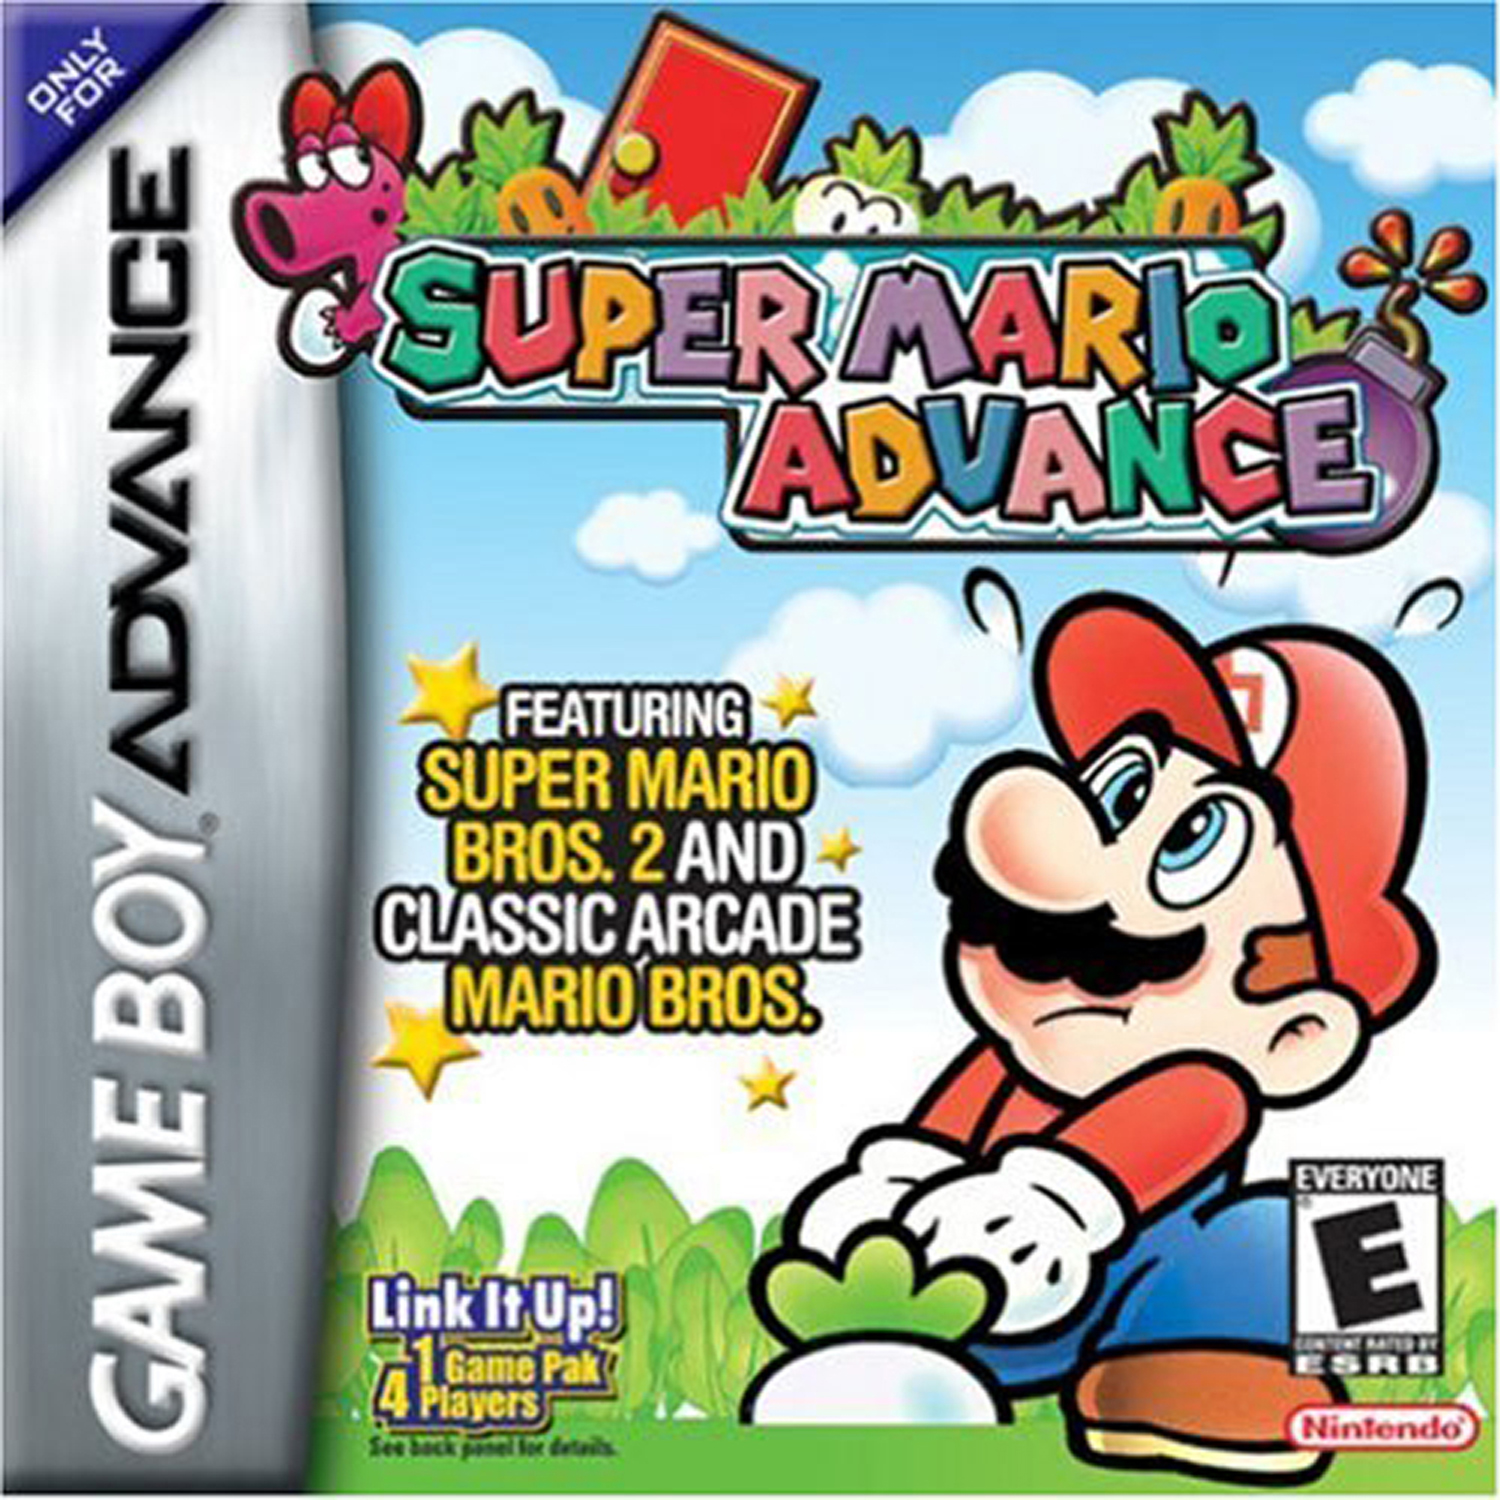 Super Mario Advance, Nintendo, WIIU, [Digital Download], 0004549666067